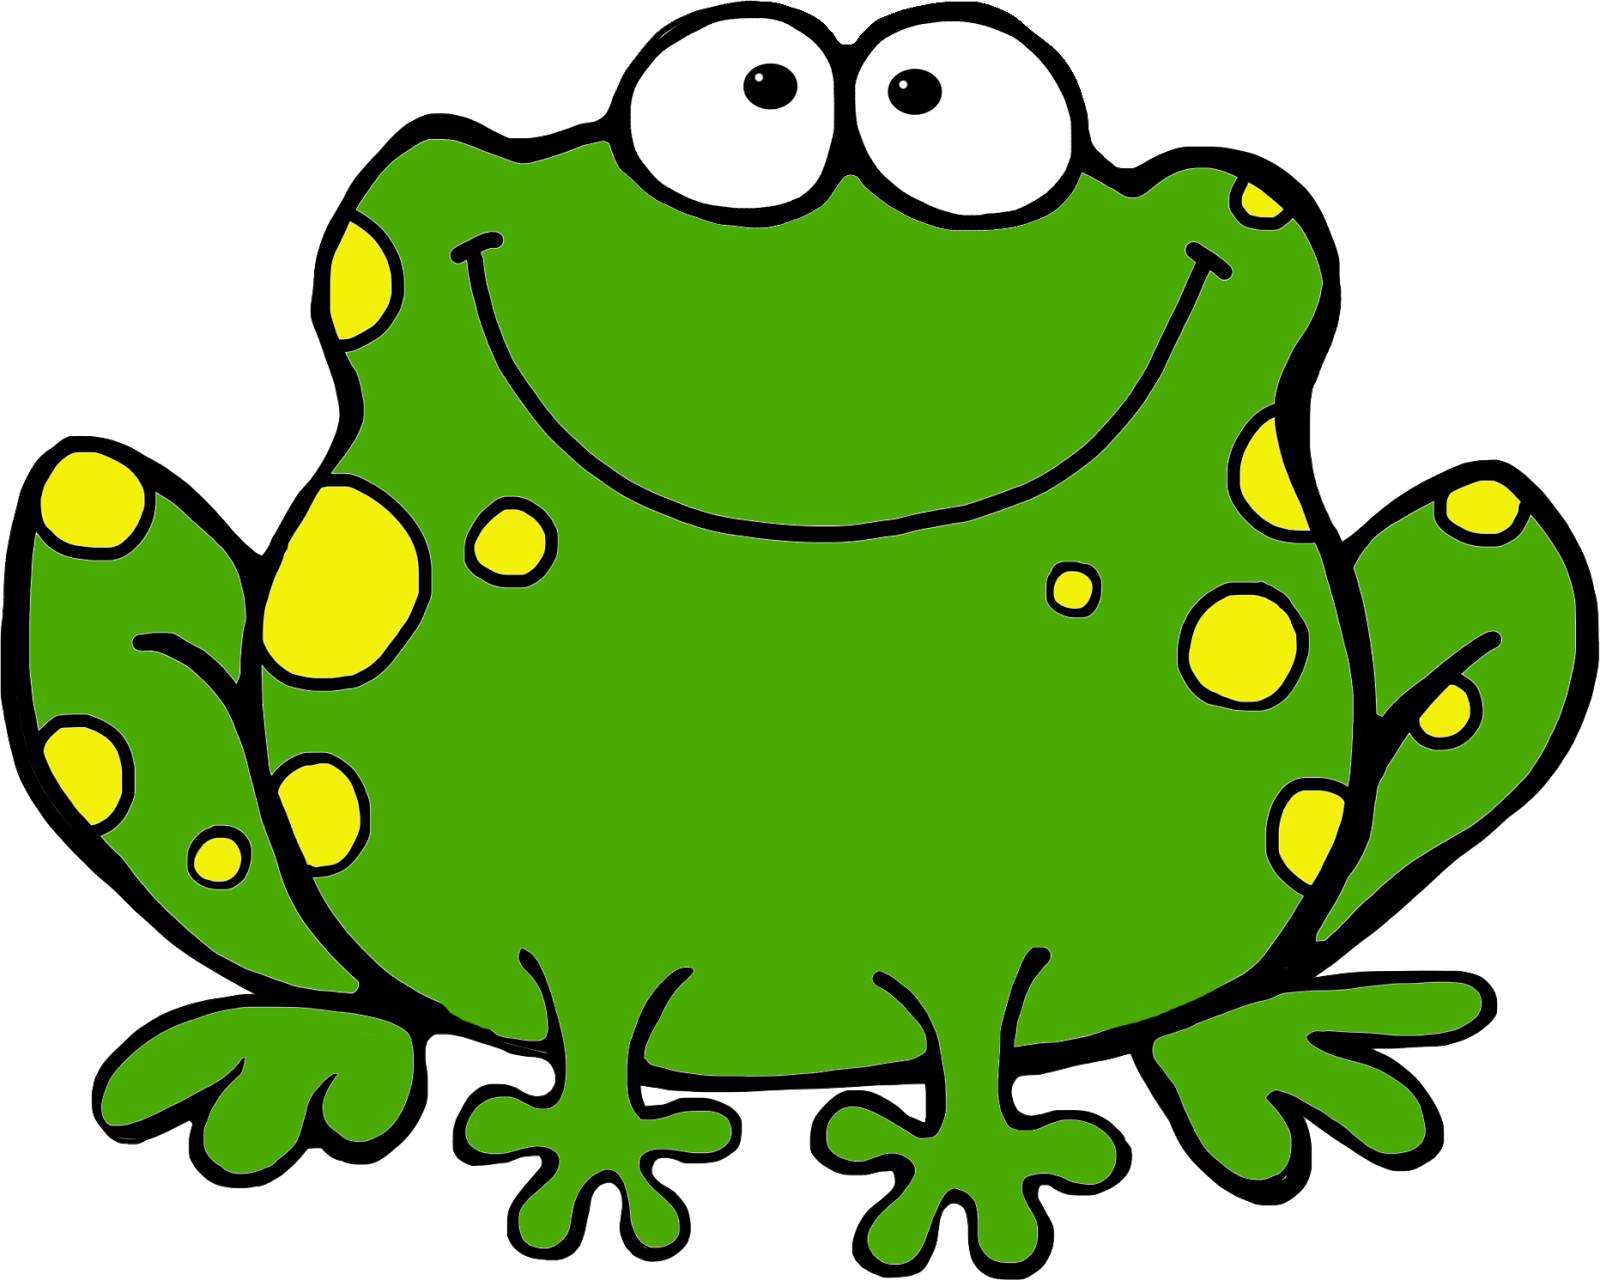 1600x1280 Image Of Cute Frog Clipart 6 Tree Frog Clip Art Free